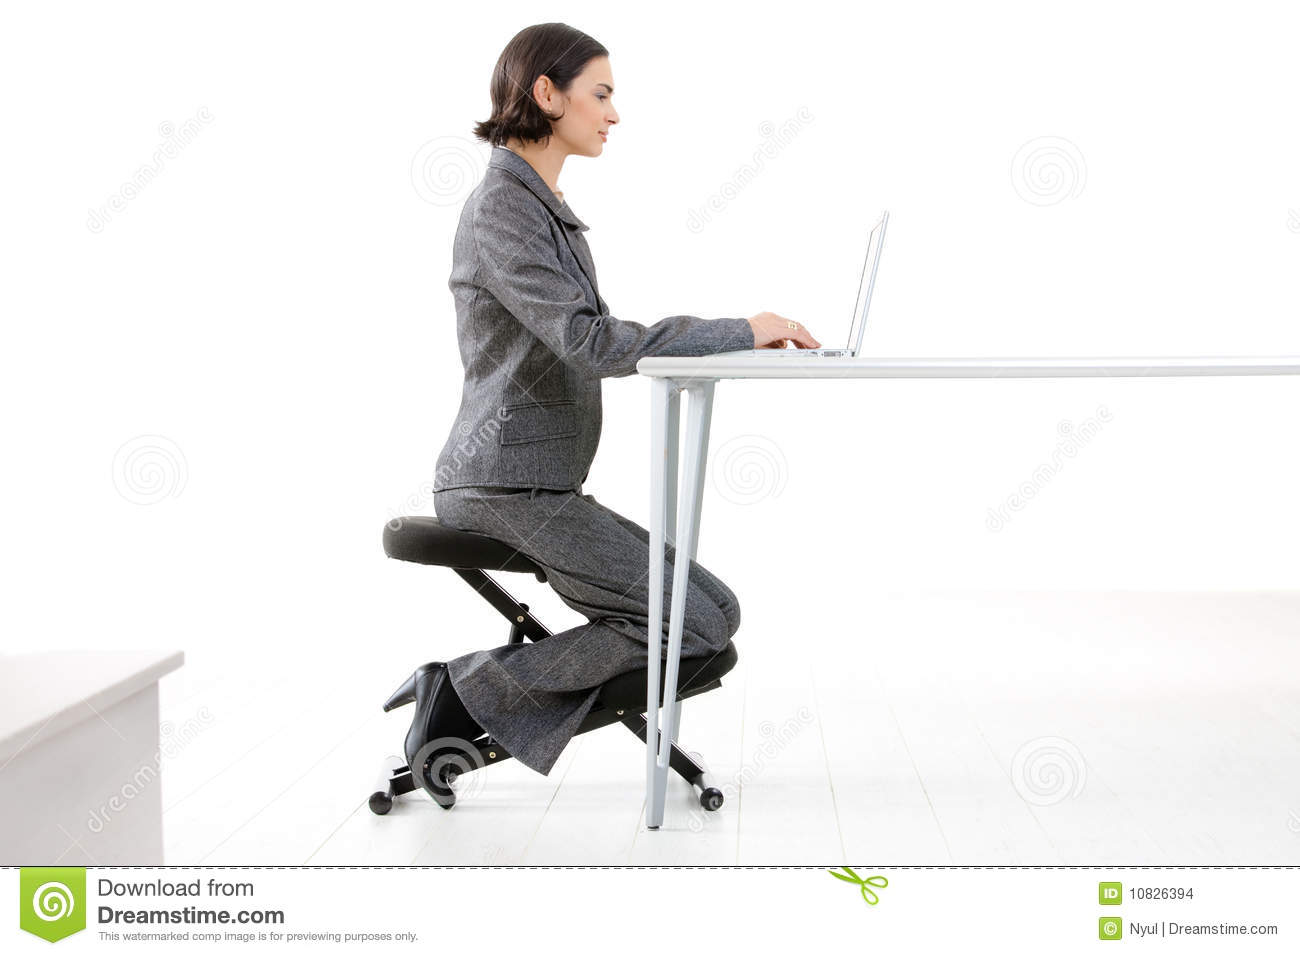 kneeling chair stock images